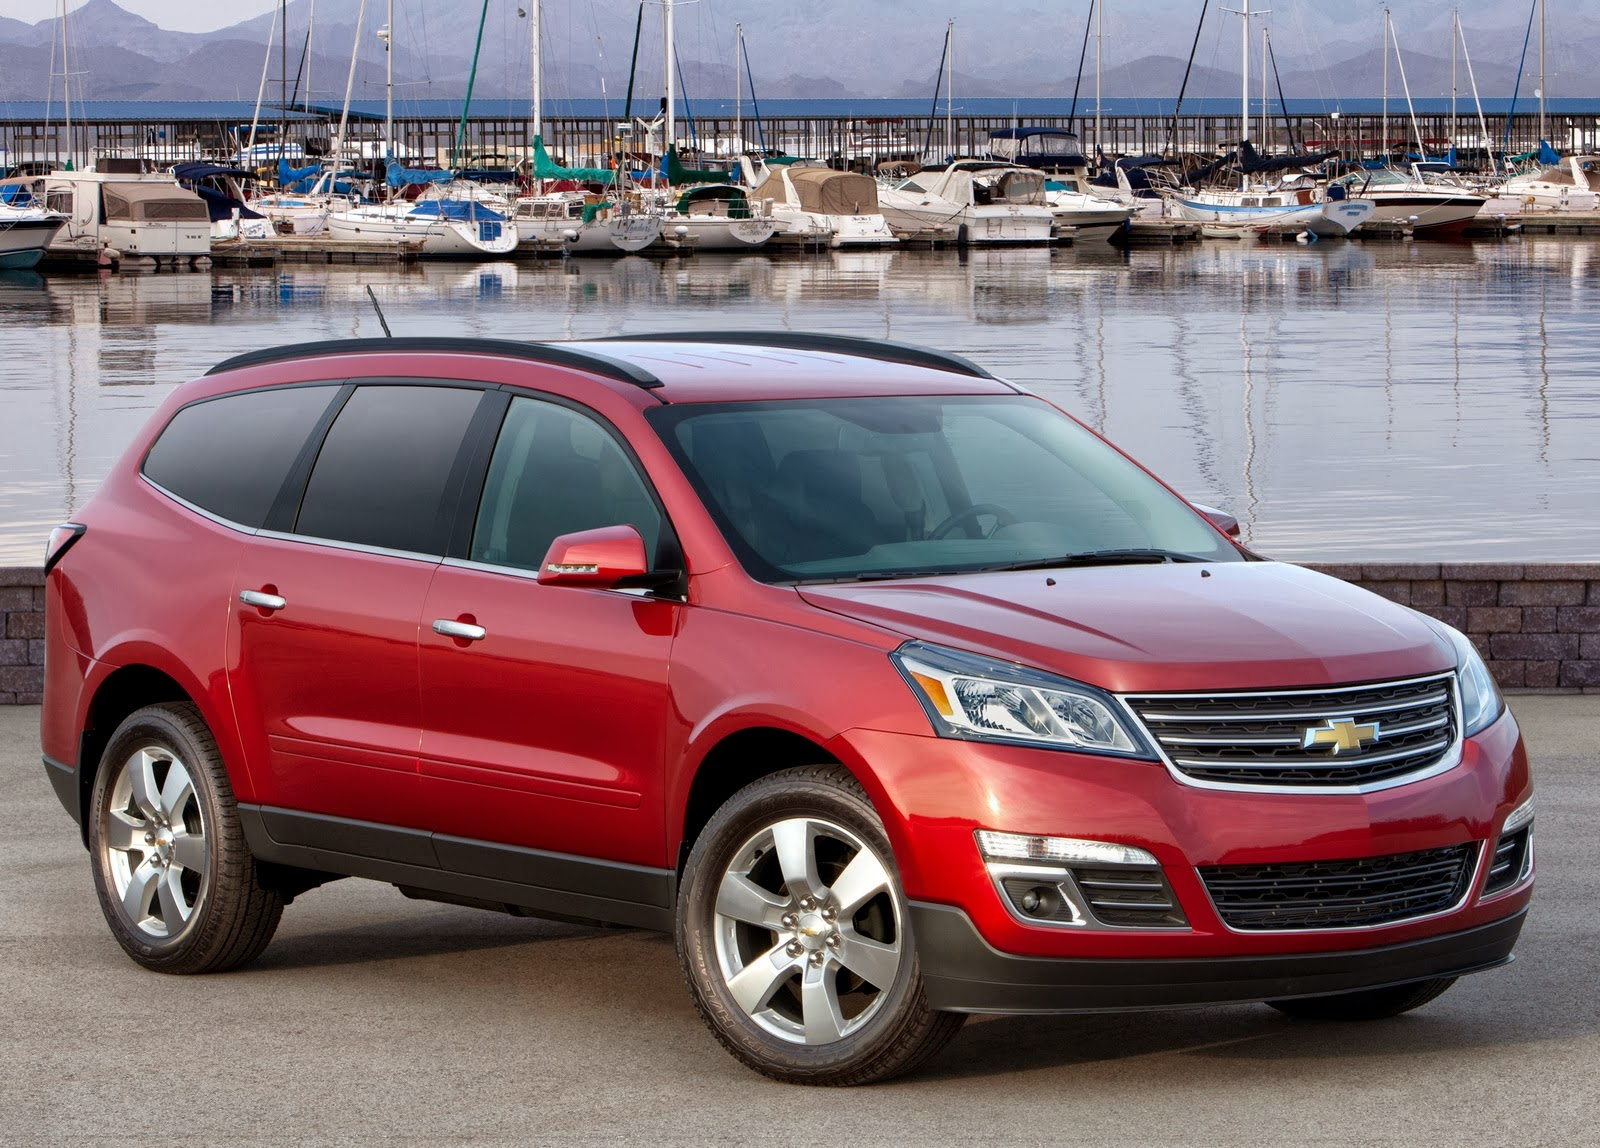 Chevrolet Impala and Traverse KBB.com's 12 Best Family Cars